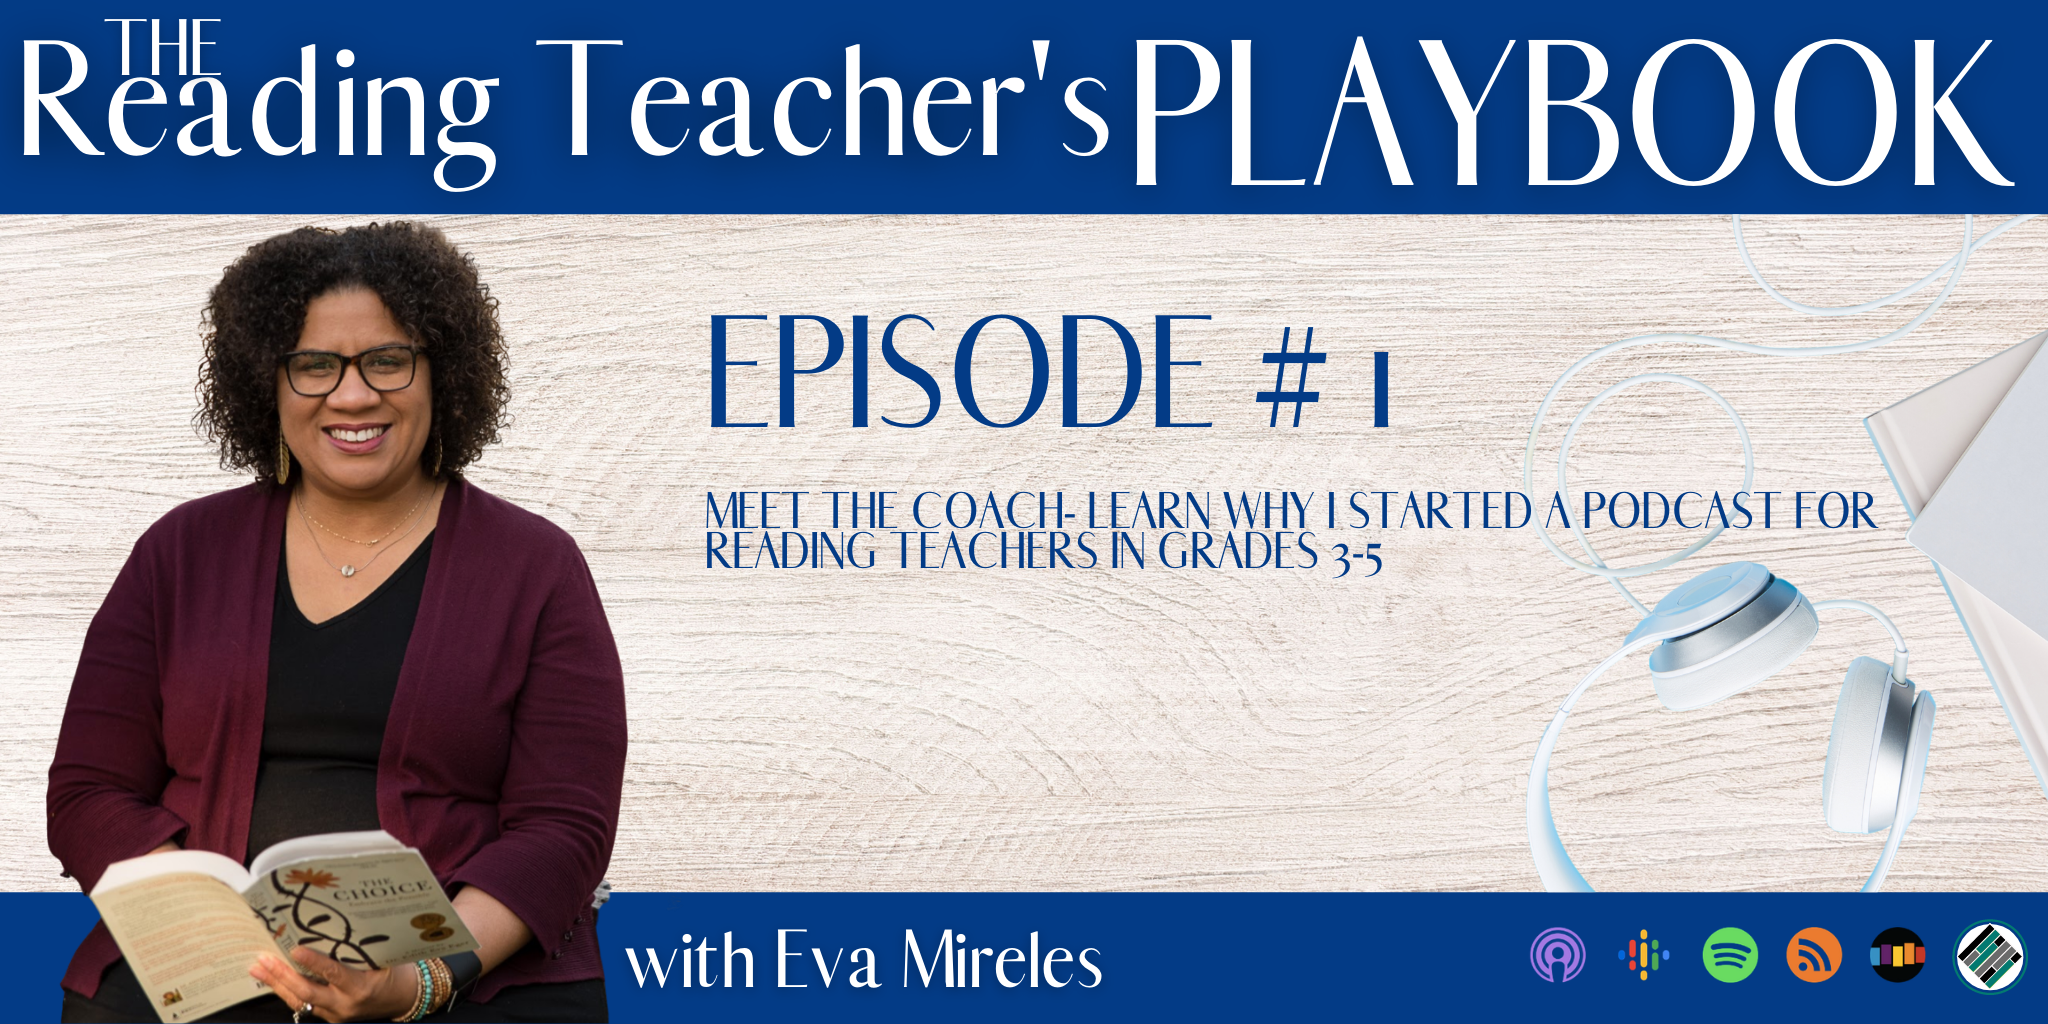 The-Reading-Teacher's-Playbook-With-Eva-Mireles-Meet-Your-Coach-EP-1